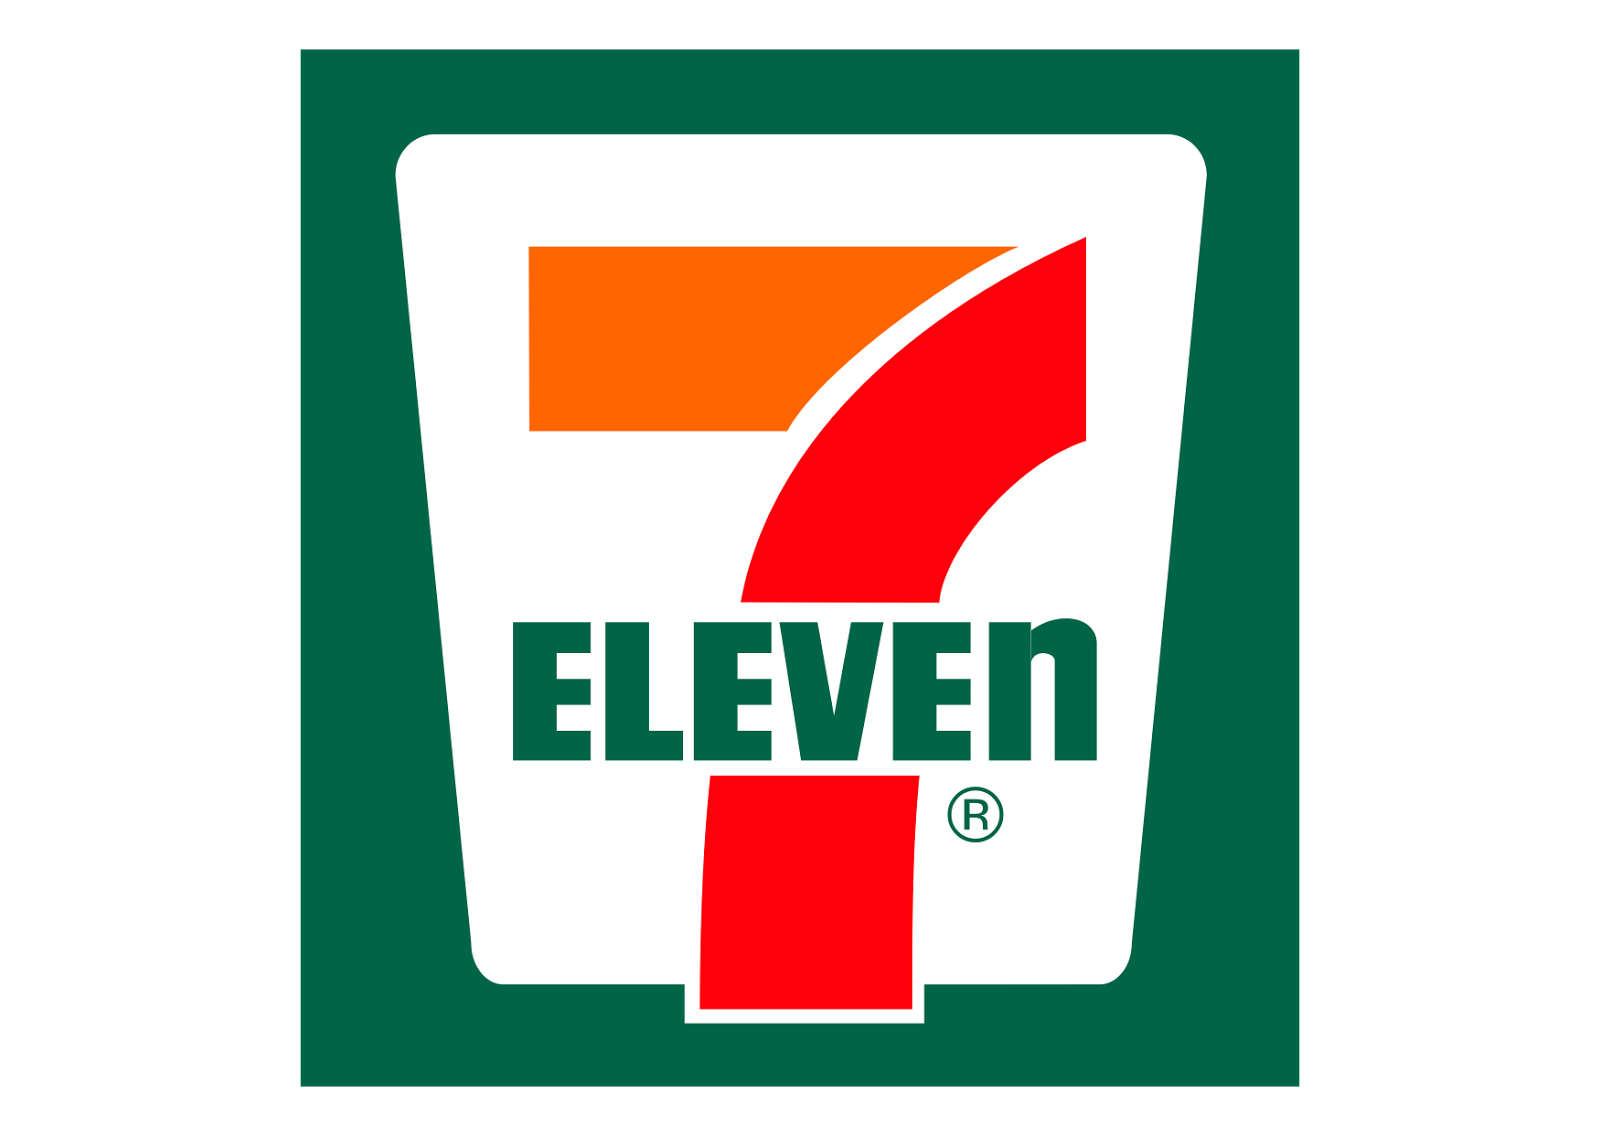 7 eleven logo vector vector logo download pinterest logos rh pinterest com new state farm logo vector state farm logo vector art